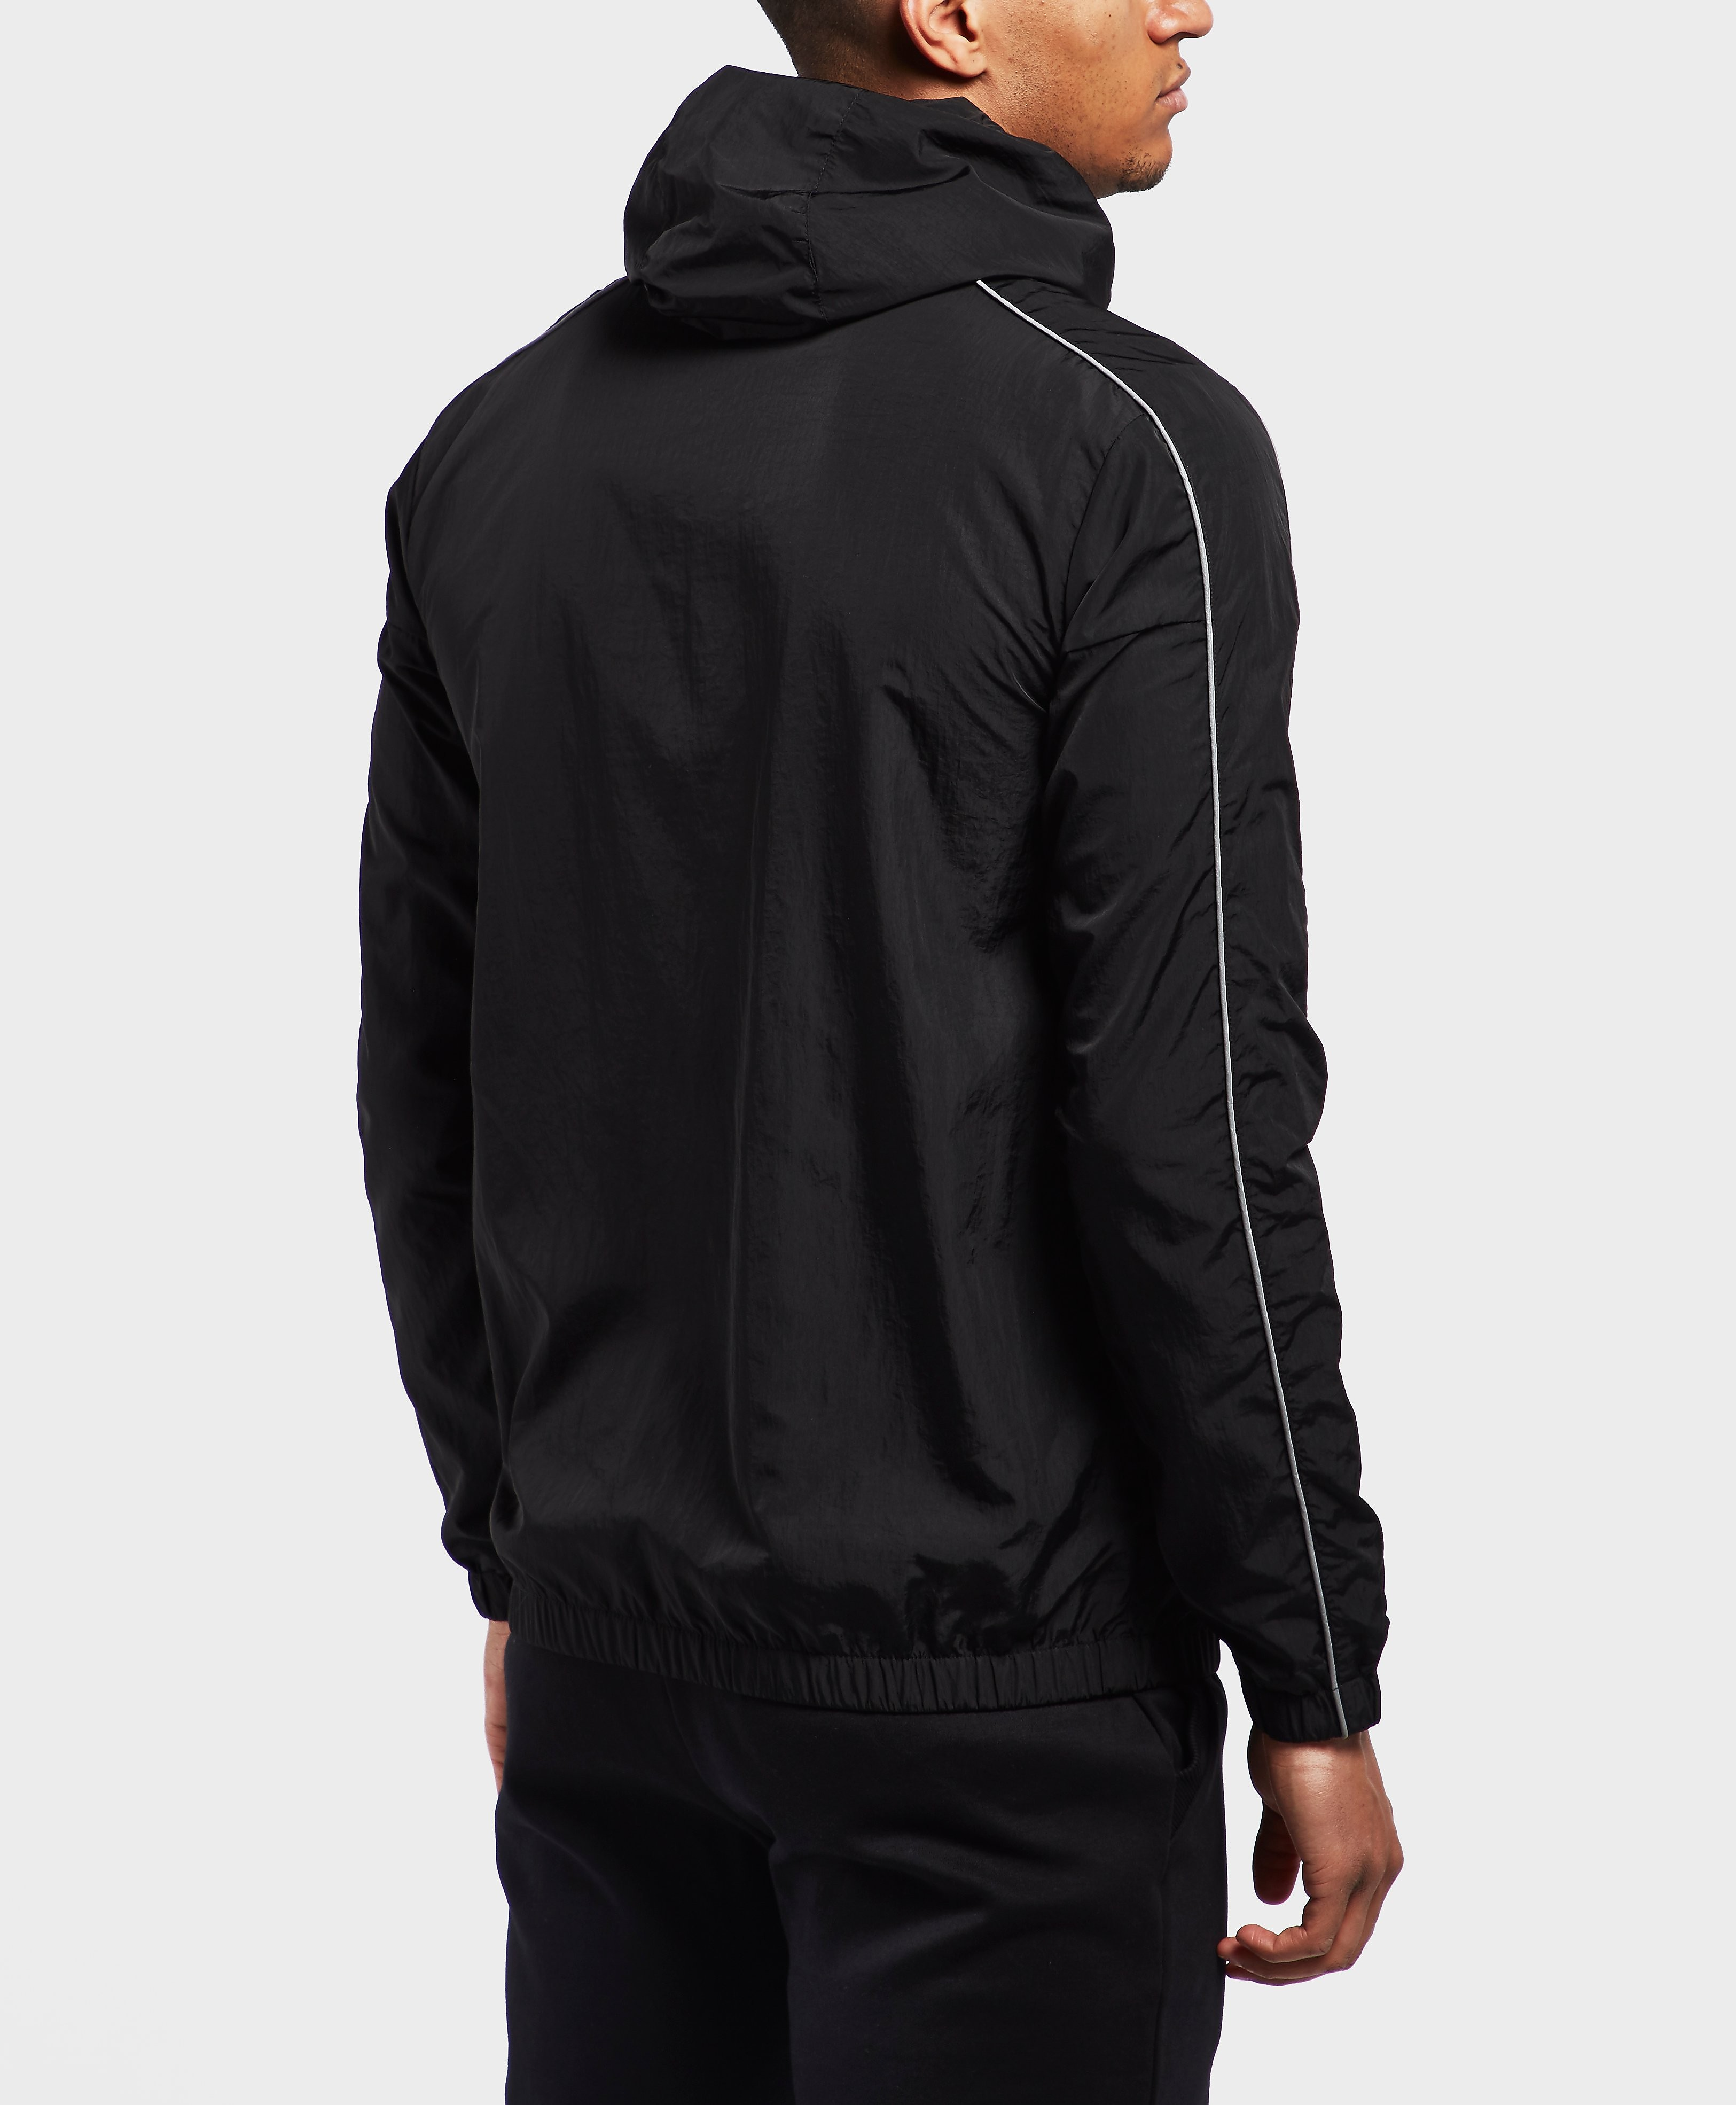 Align Glider Woven Hooded Jacket